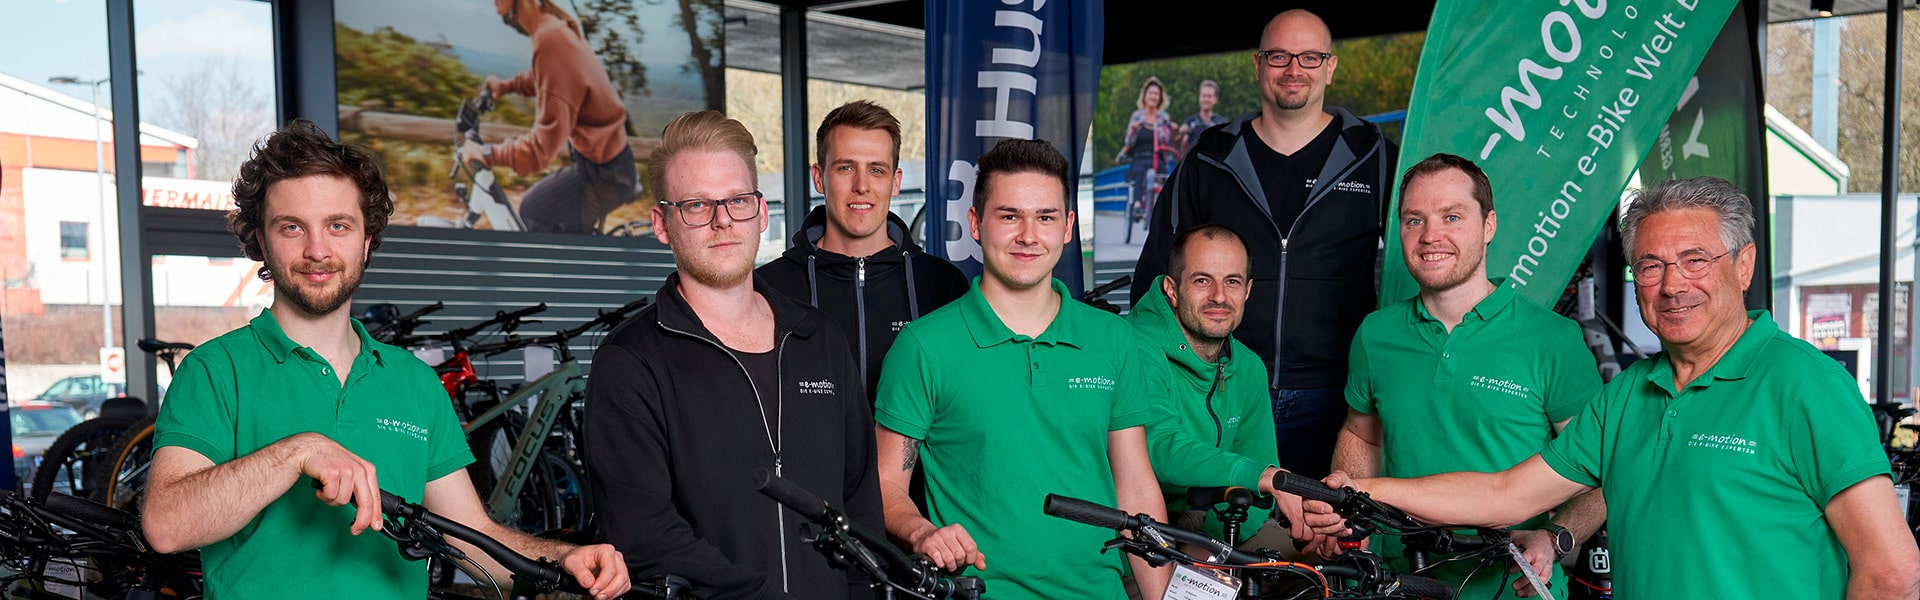 Das Team der e-motion e-Bike Welt Bad Hall